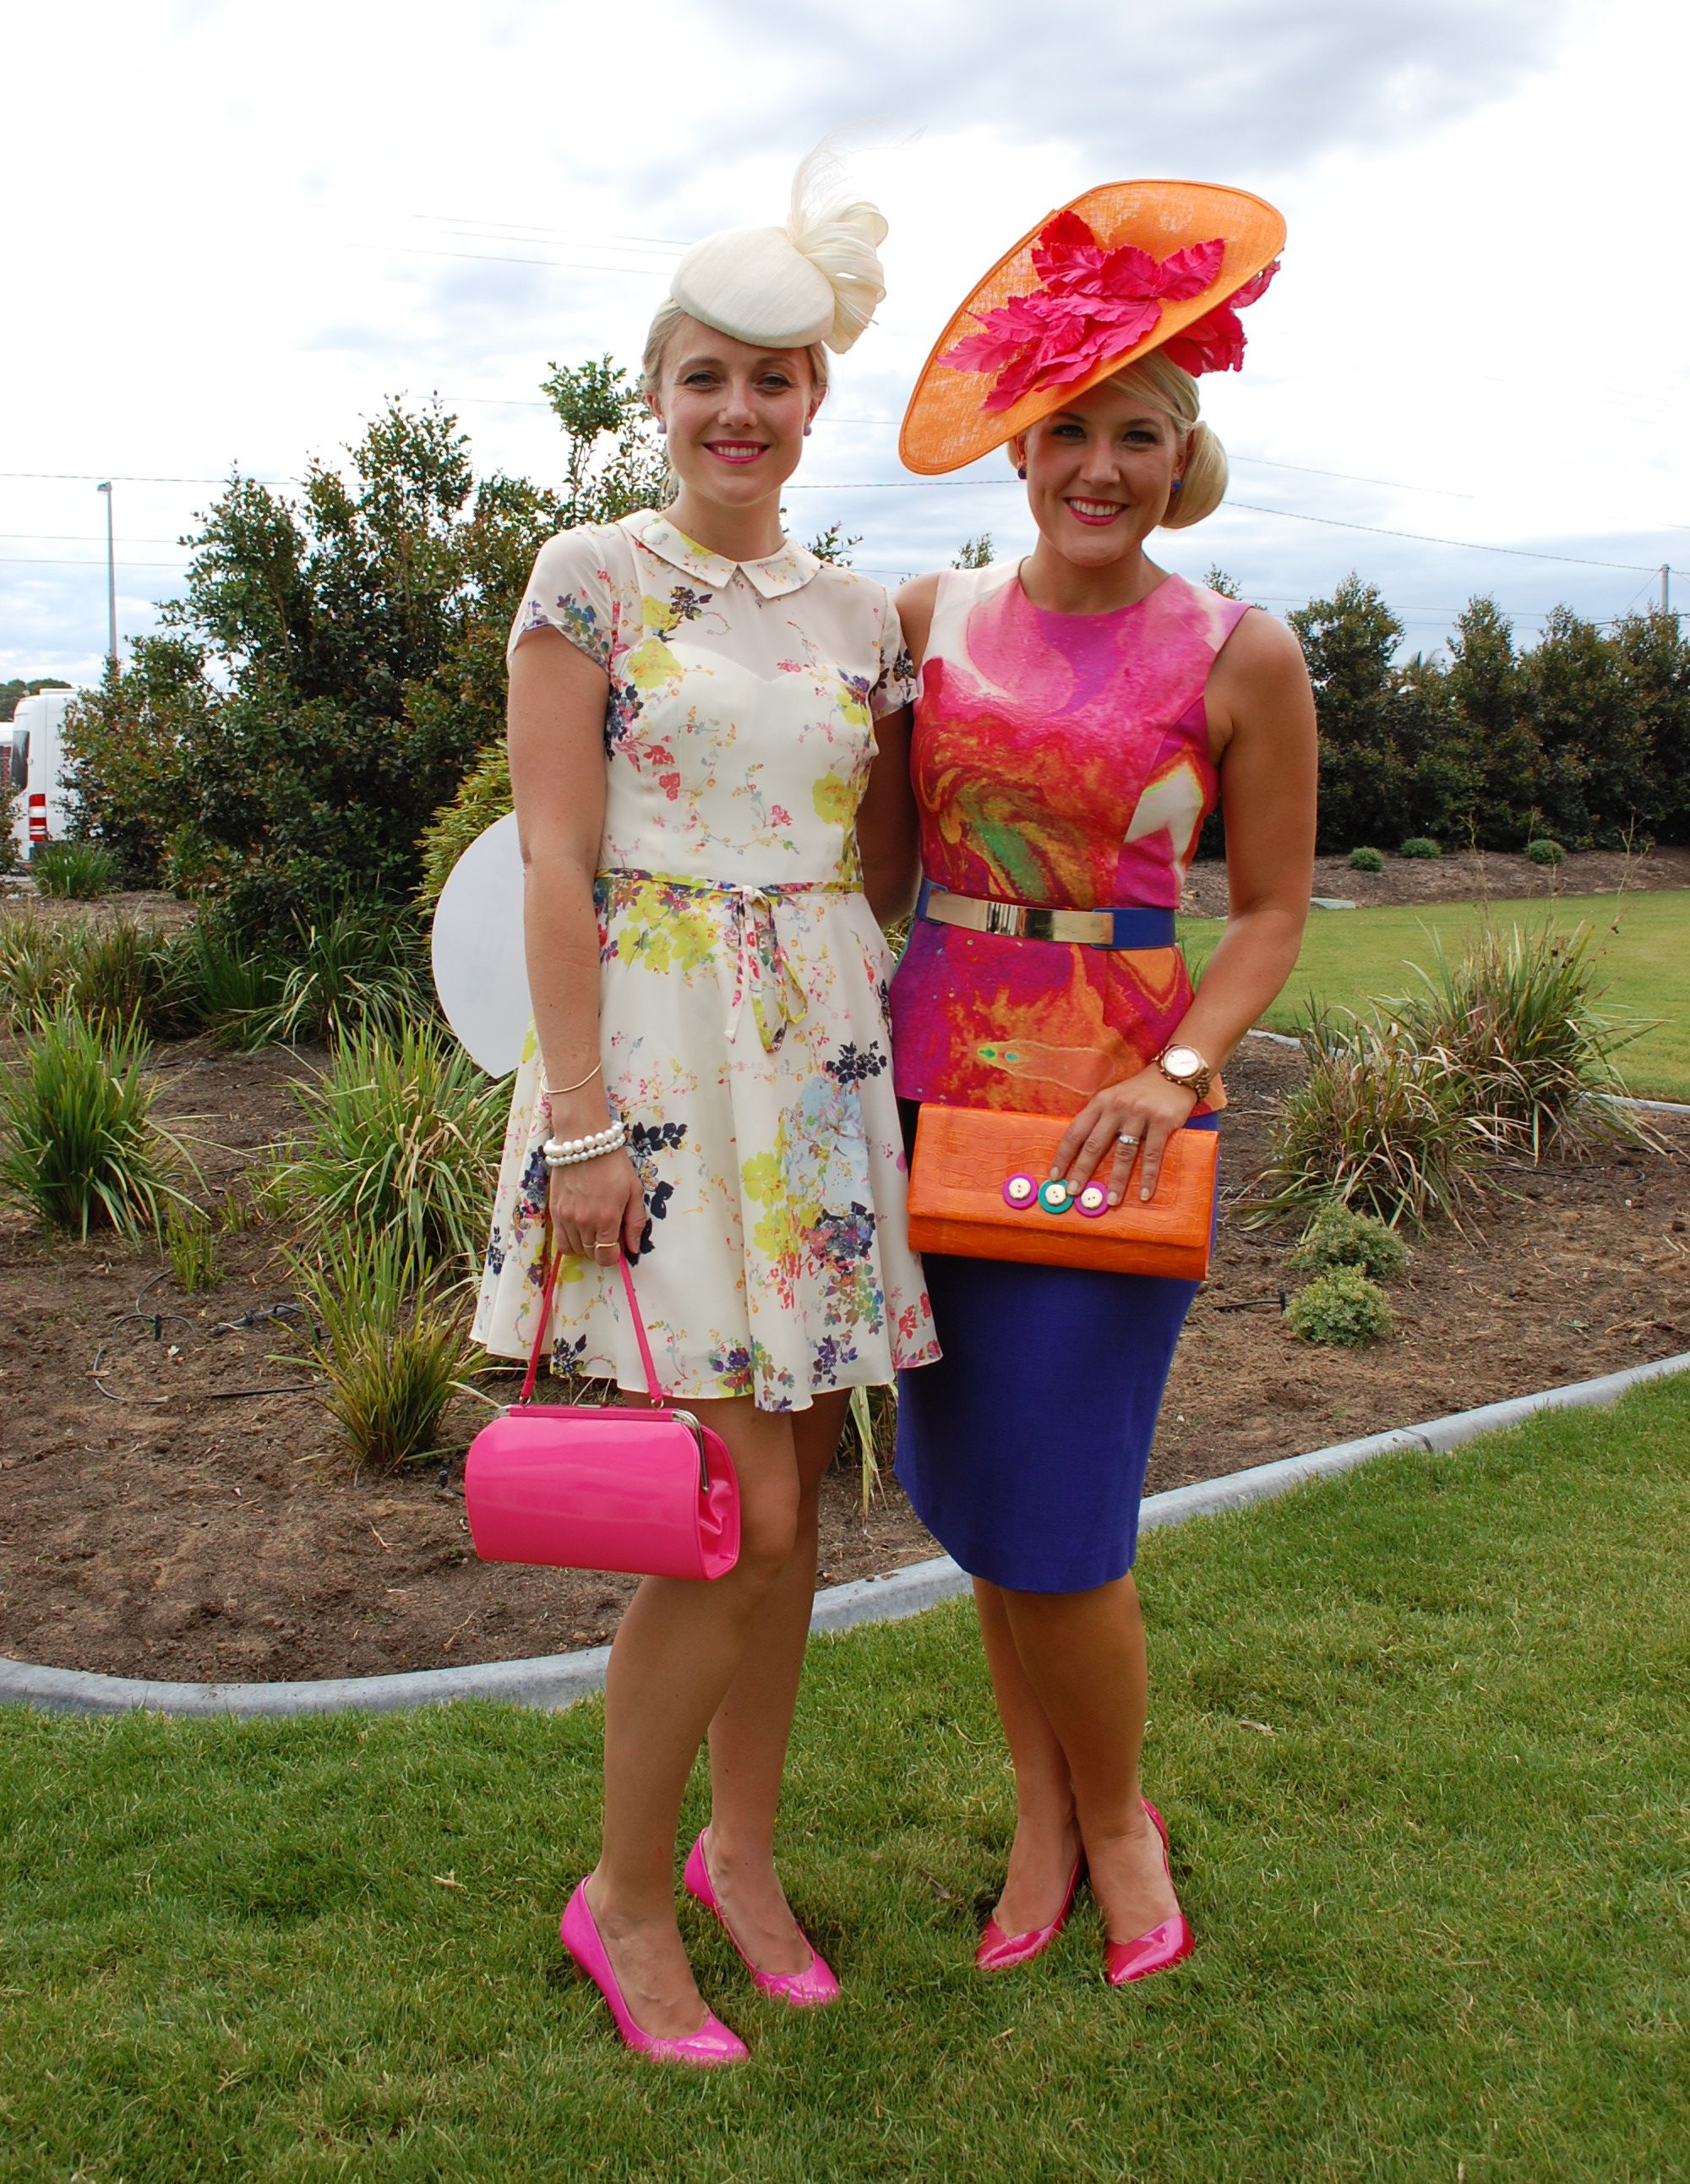 Adorn collection millinery left fashions on the field sa adelaide